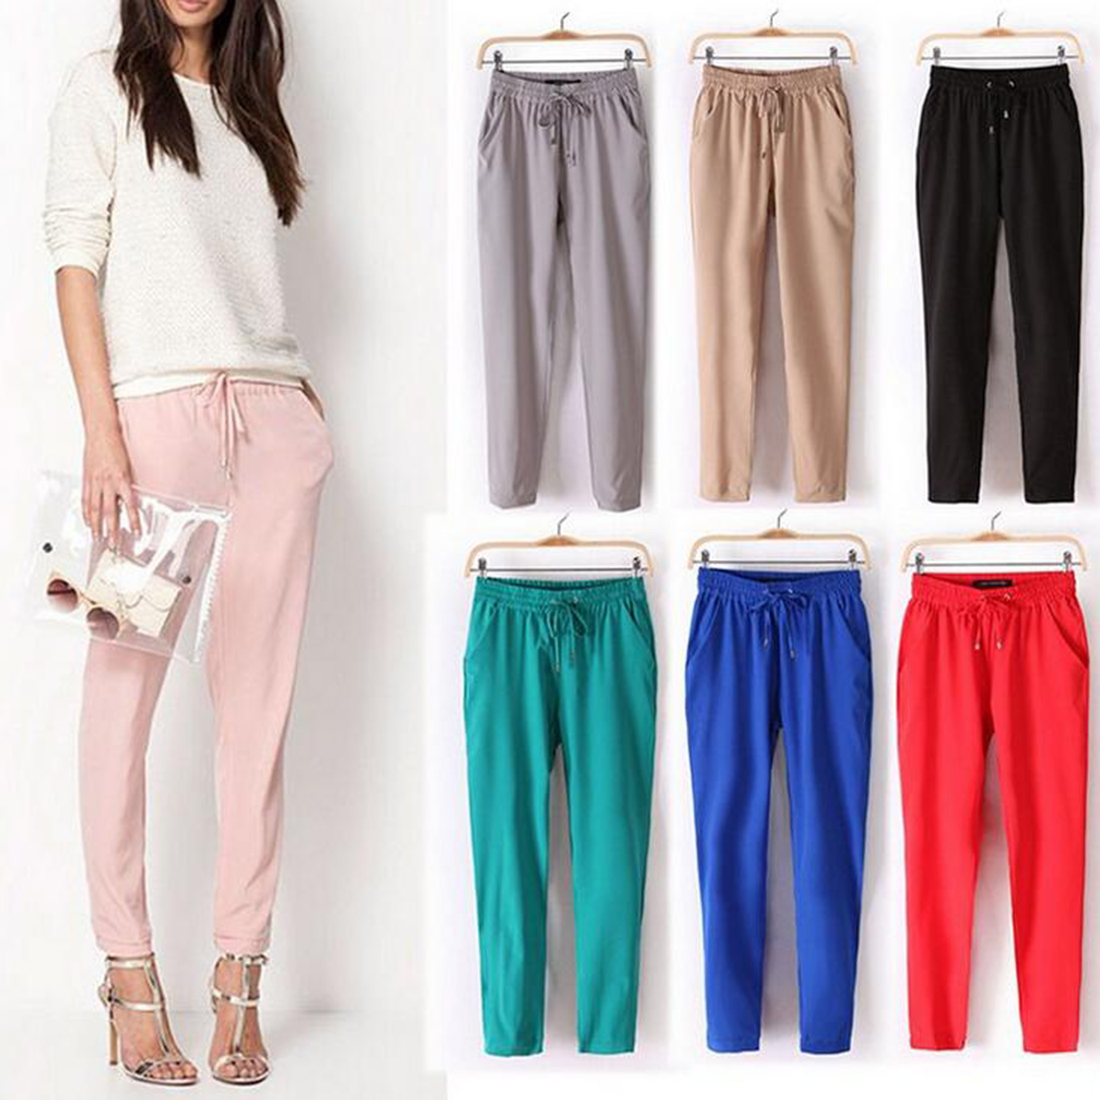 Compare Prices on Comfortable Pants for Women- Online Shopping/Buy ...